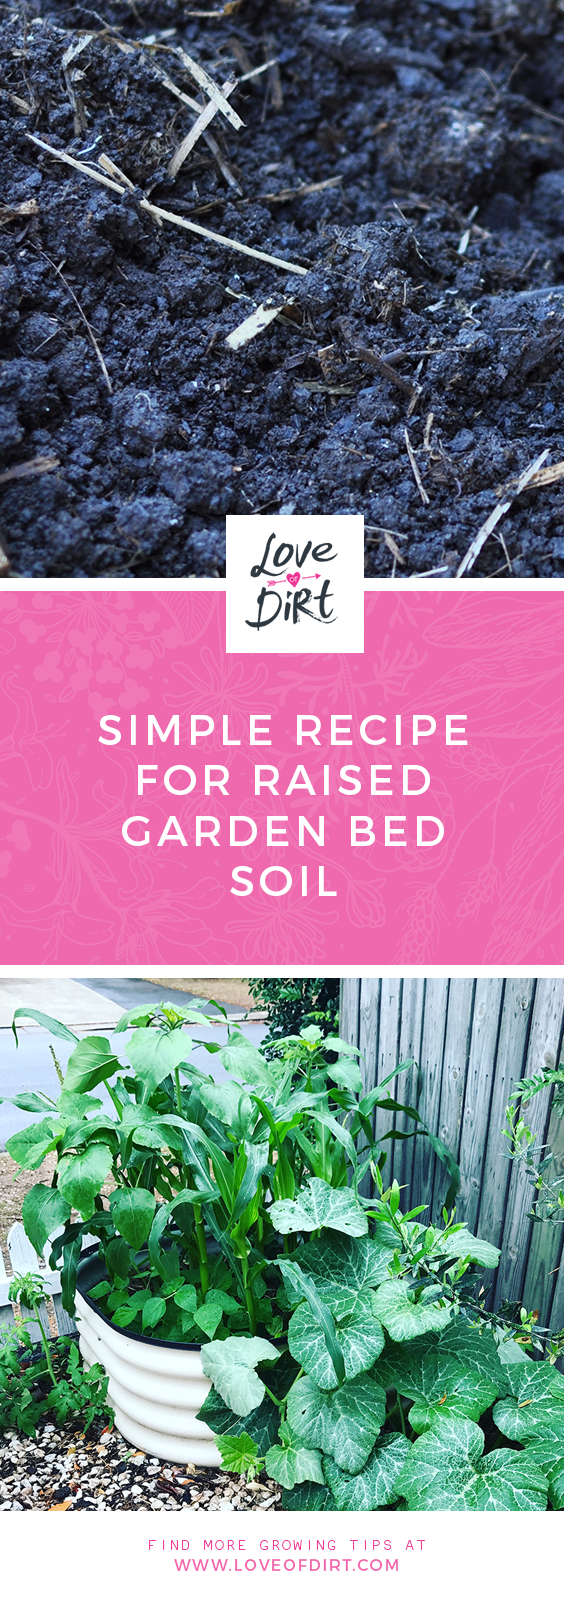 Soil recipe for a raised garden beds